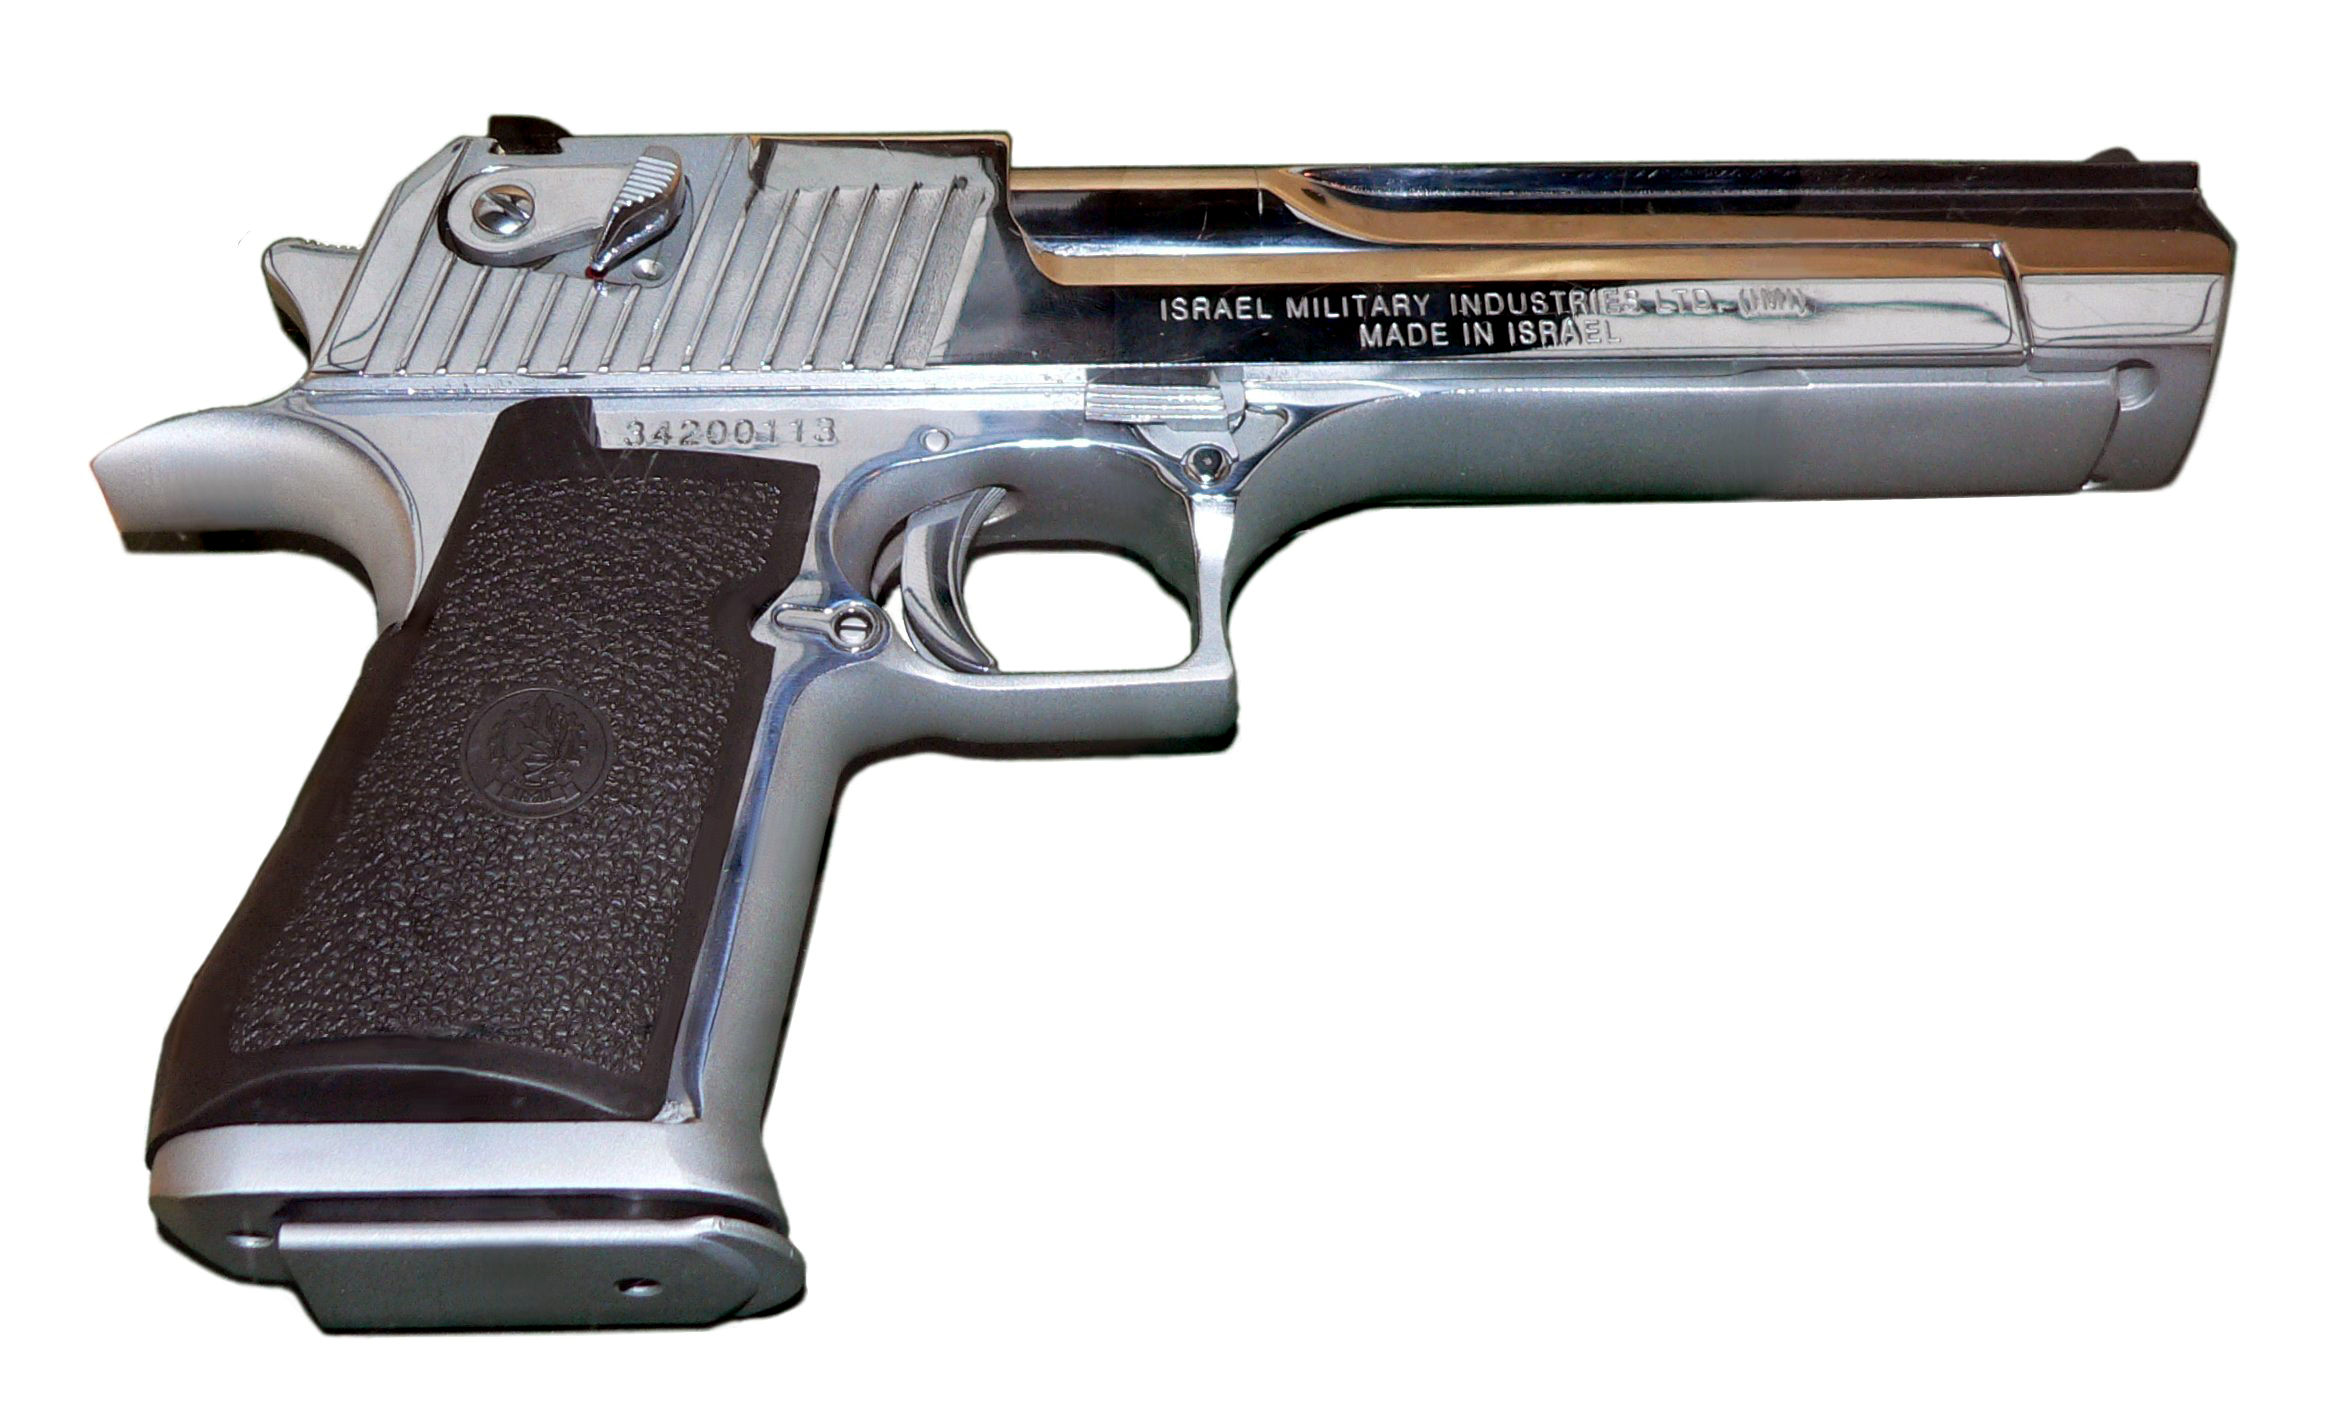 http://upload.wikimedia.org/wikipedia/commons/9/99/Desert-Eagle-p1030134.jpg